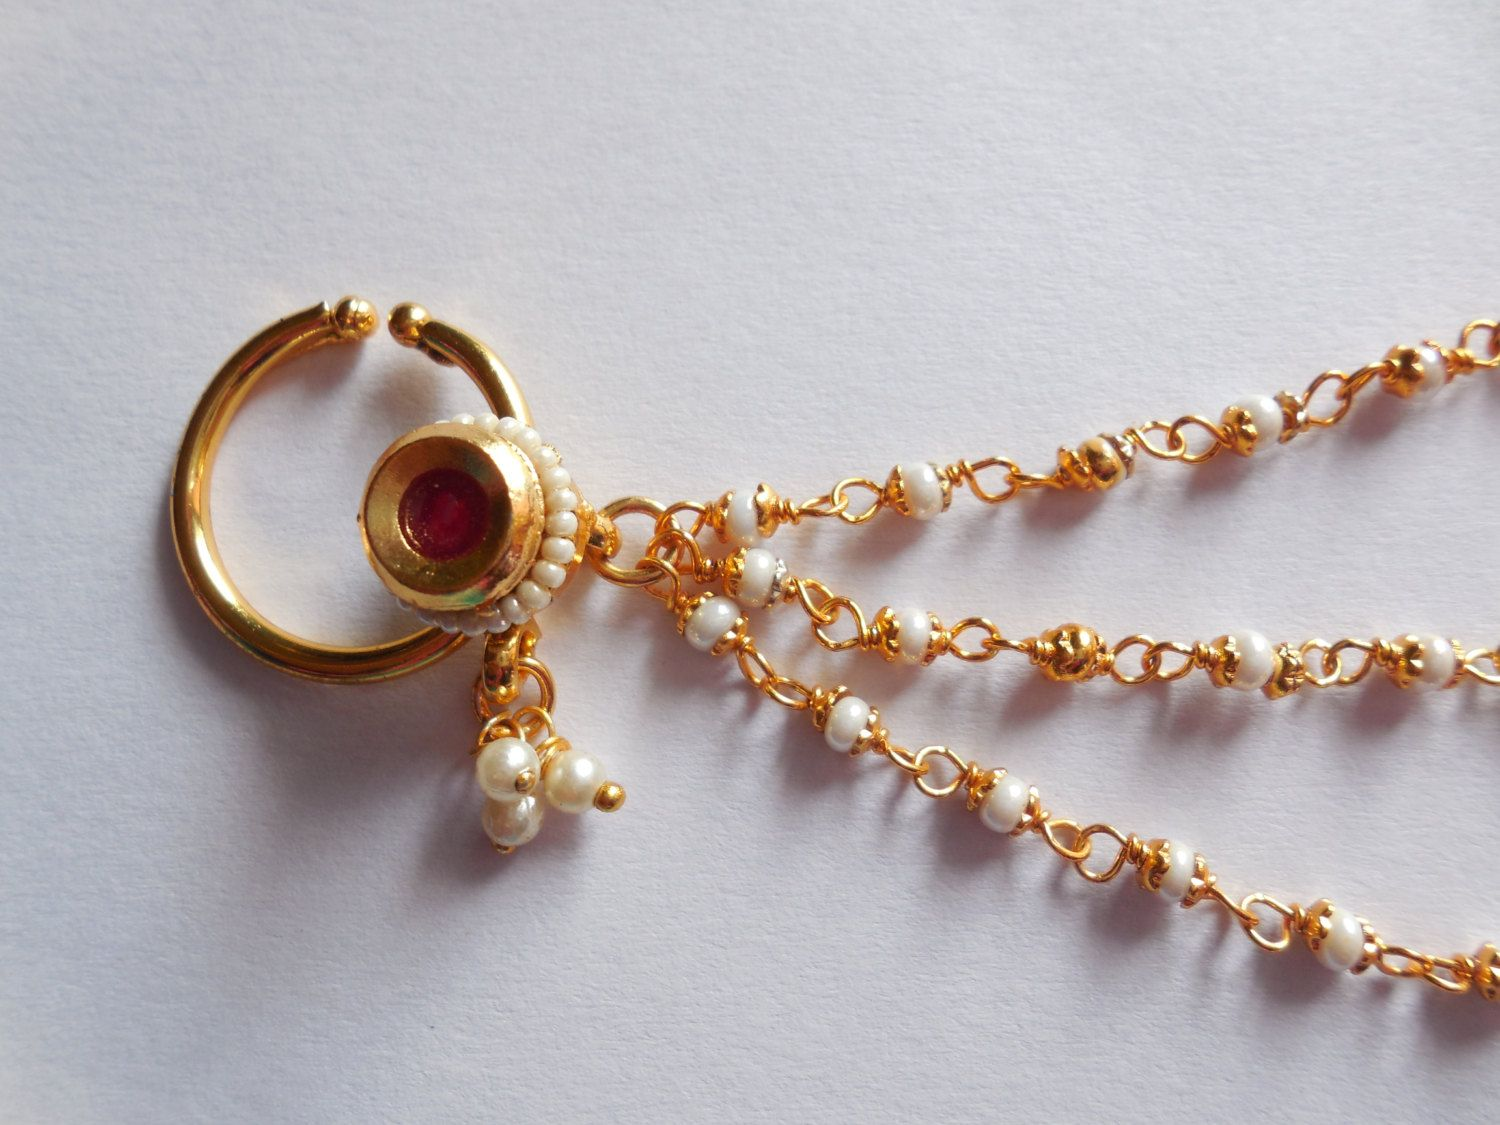 About nath nose ring mukku pudaka on pinterest jewellery gold nose - Beautiful Indian Nose Nath For Non Pierced Nose Bridal Nose Ring With Triple Beaded